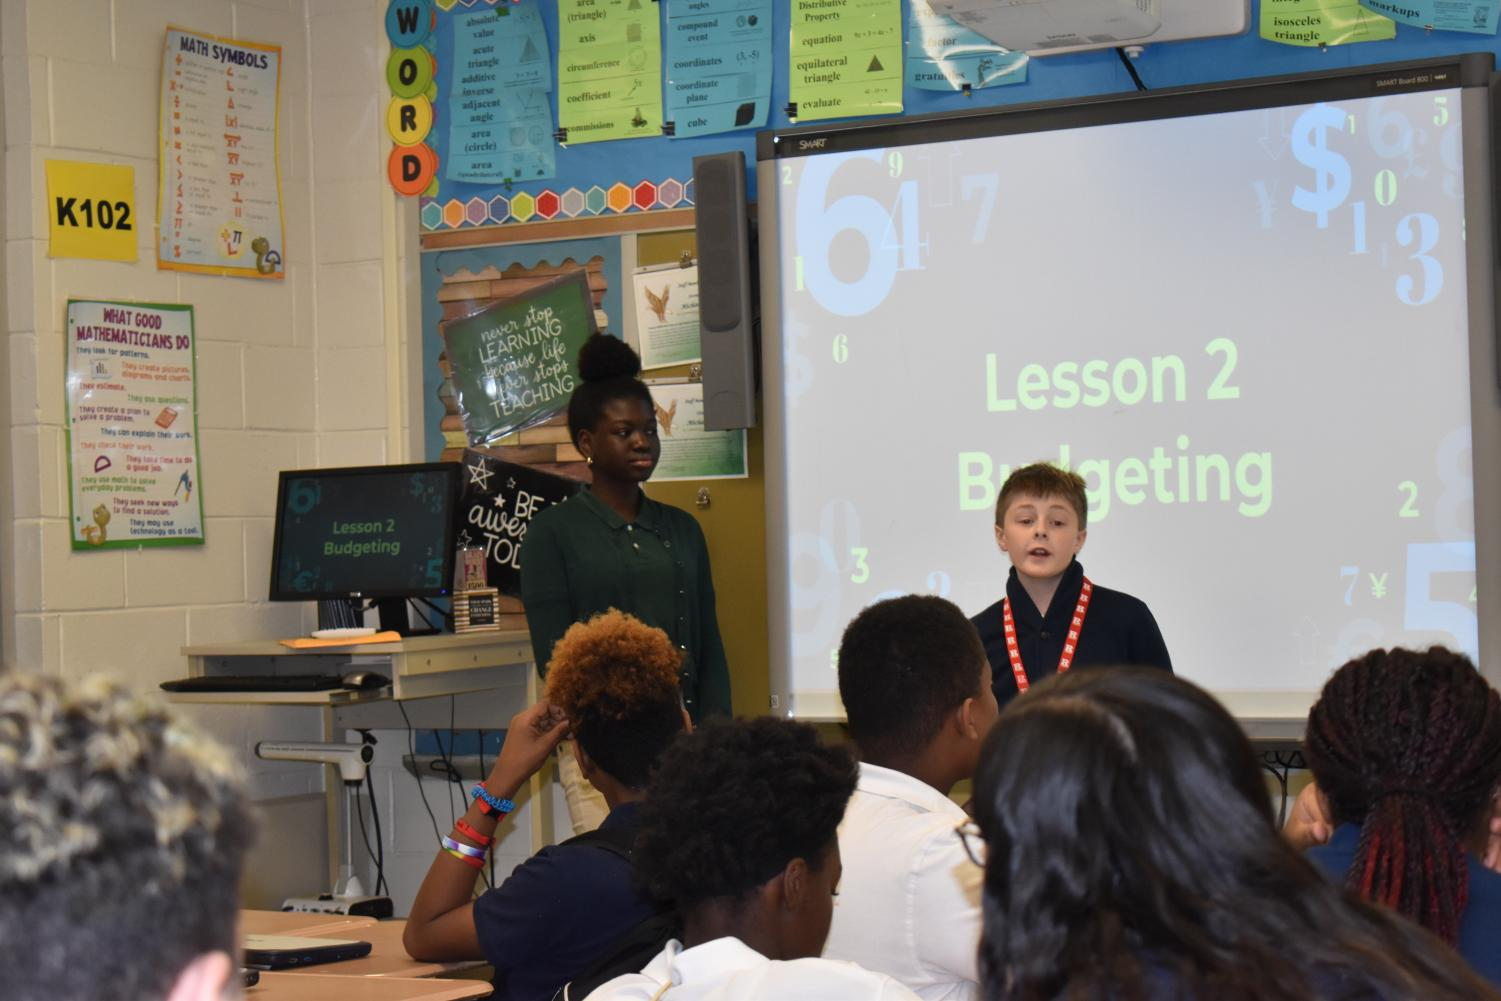 Olamide Daodu and Isaac Moran with their slideshow to teach seventh graders budgeting basics.